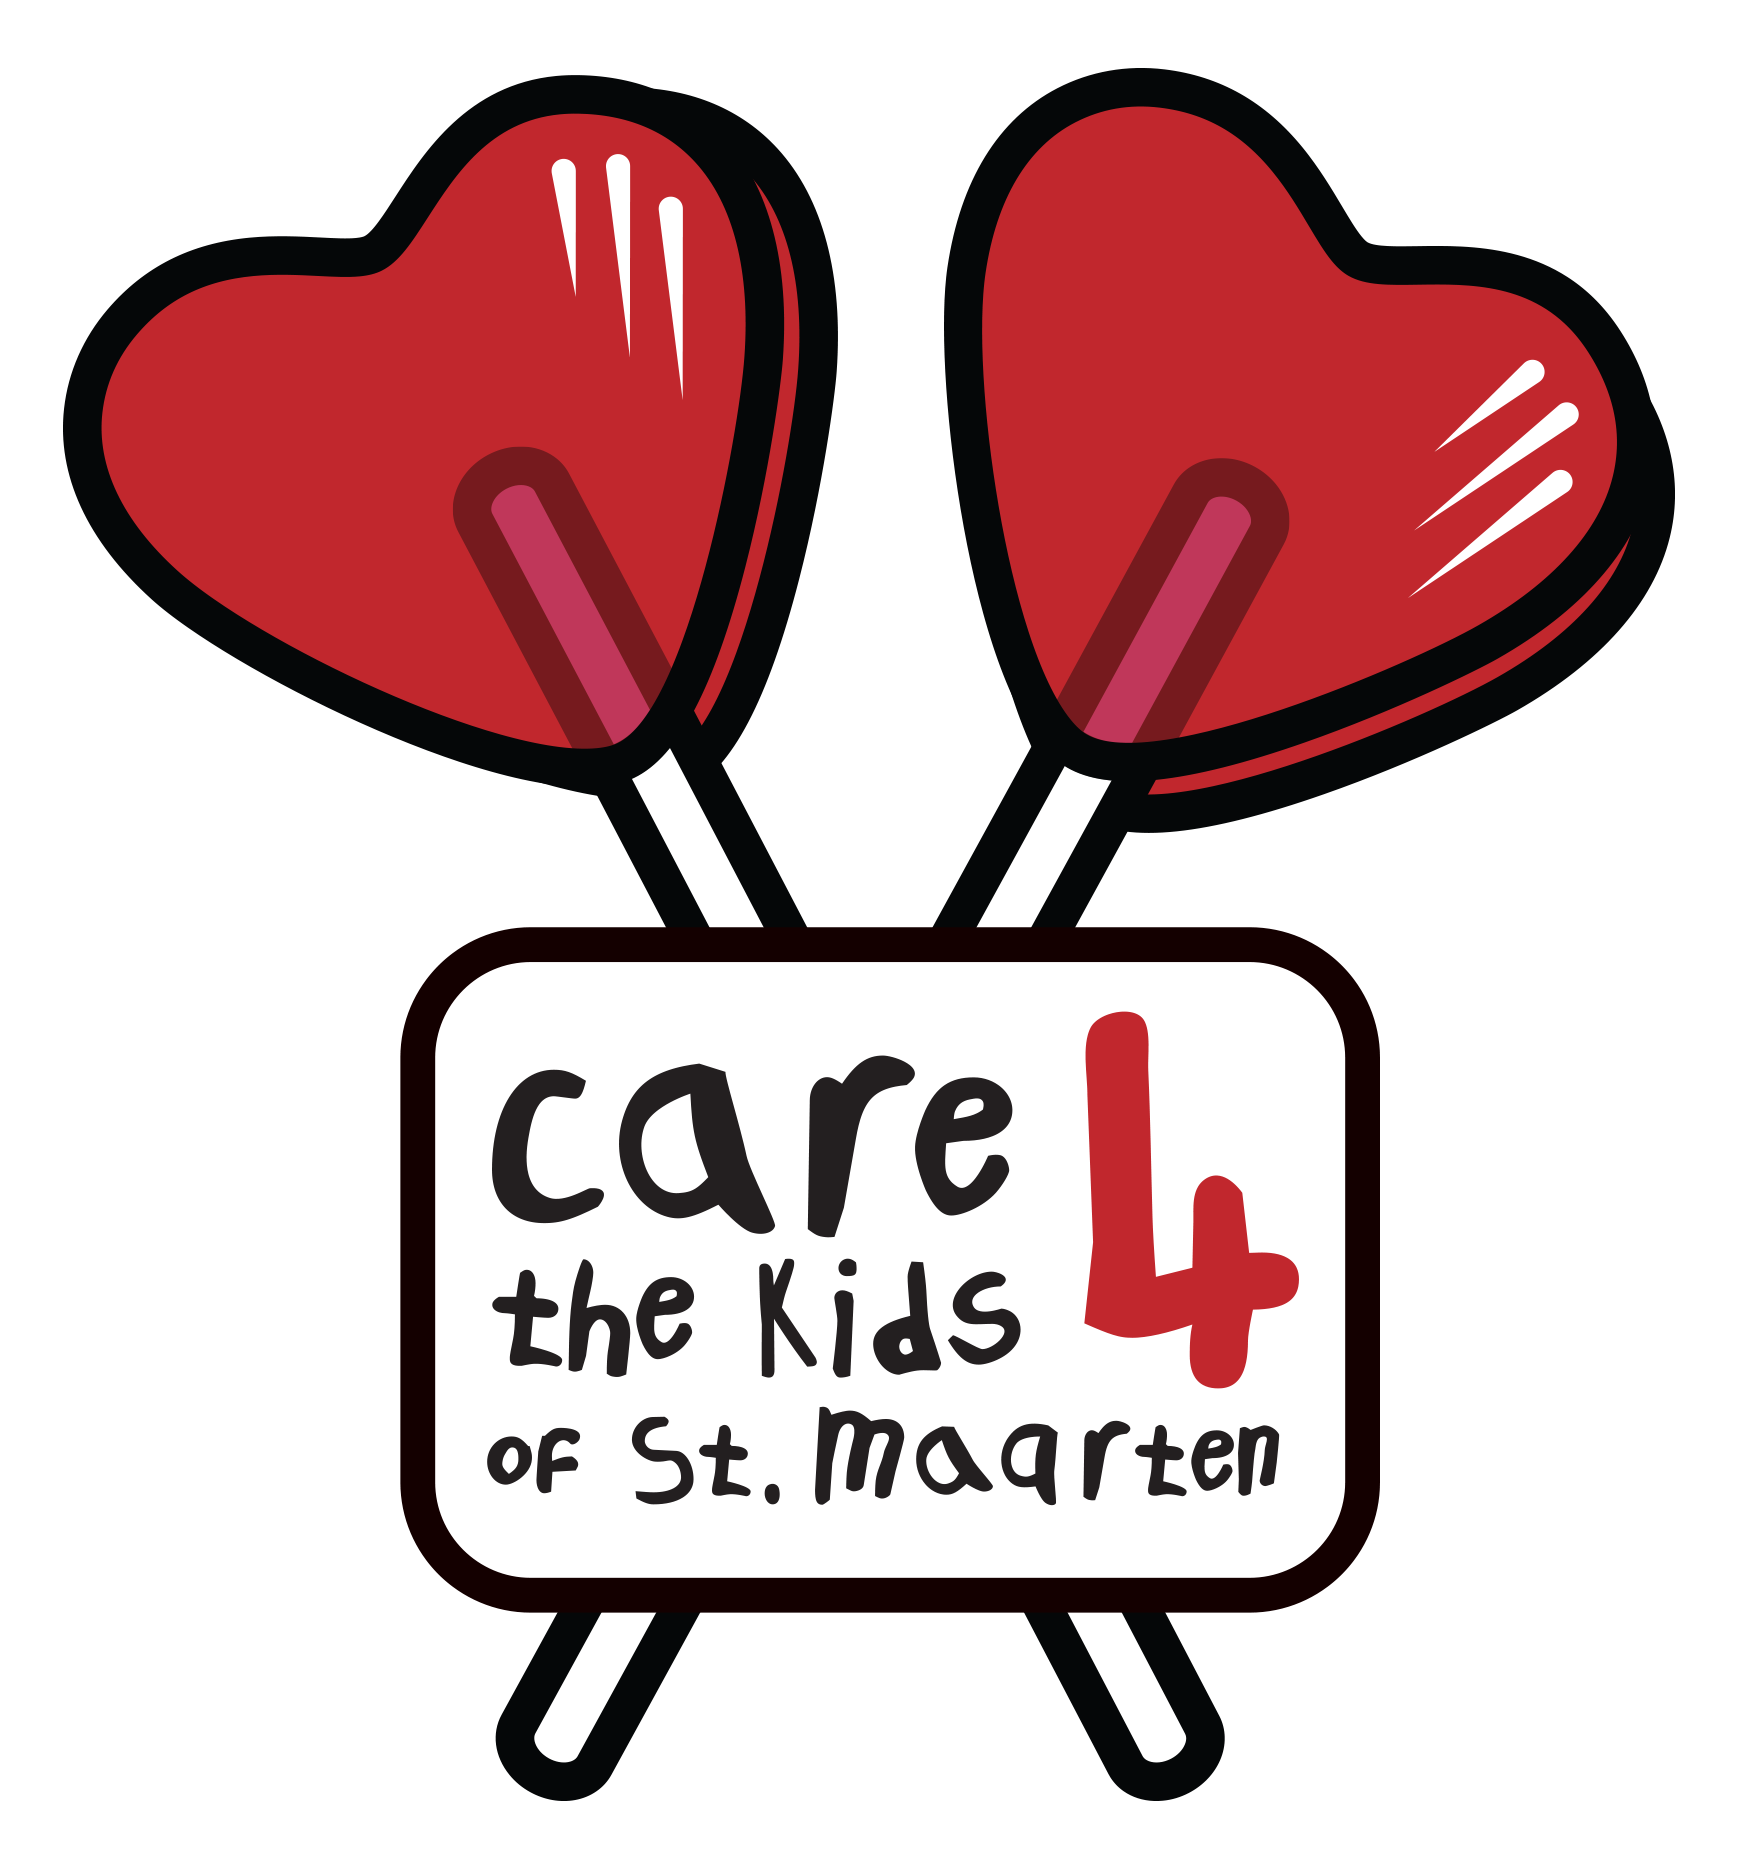 Care 4 The Kids St. Maarten